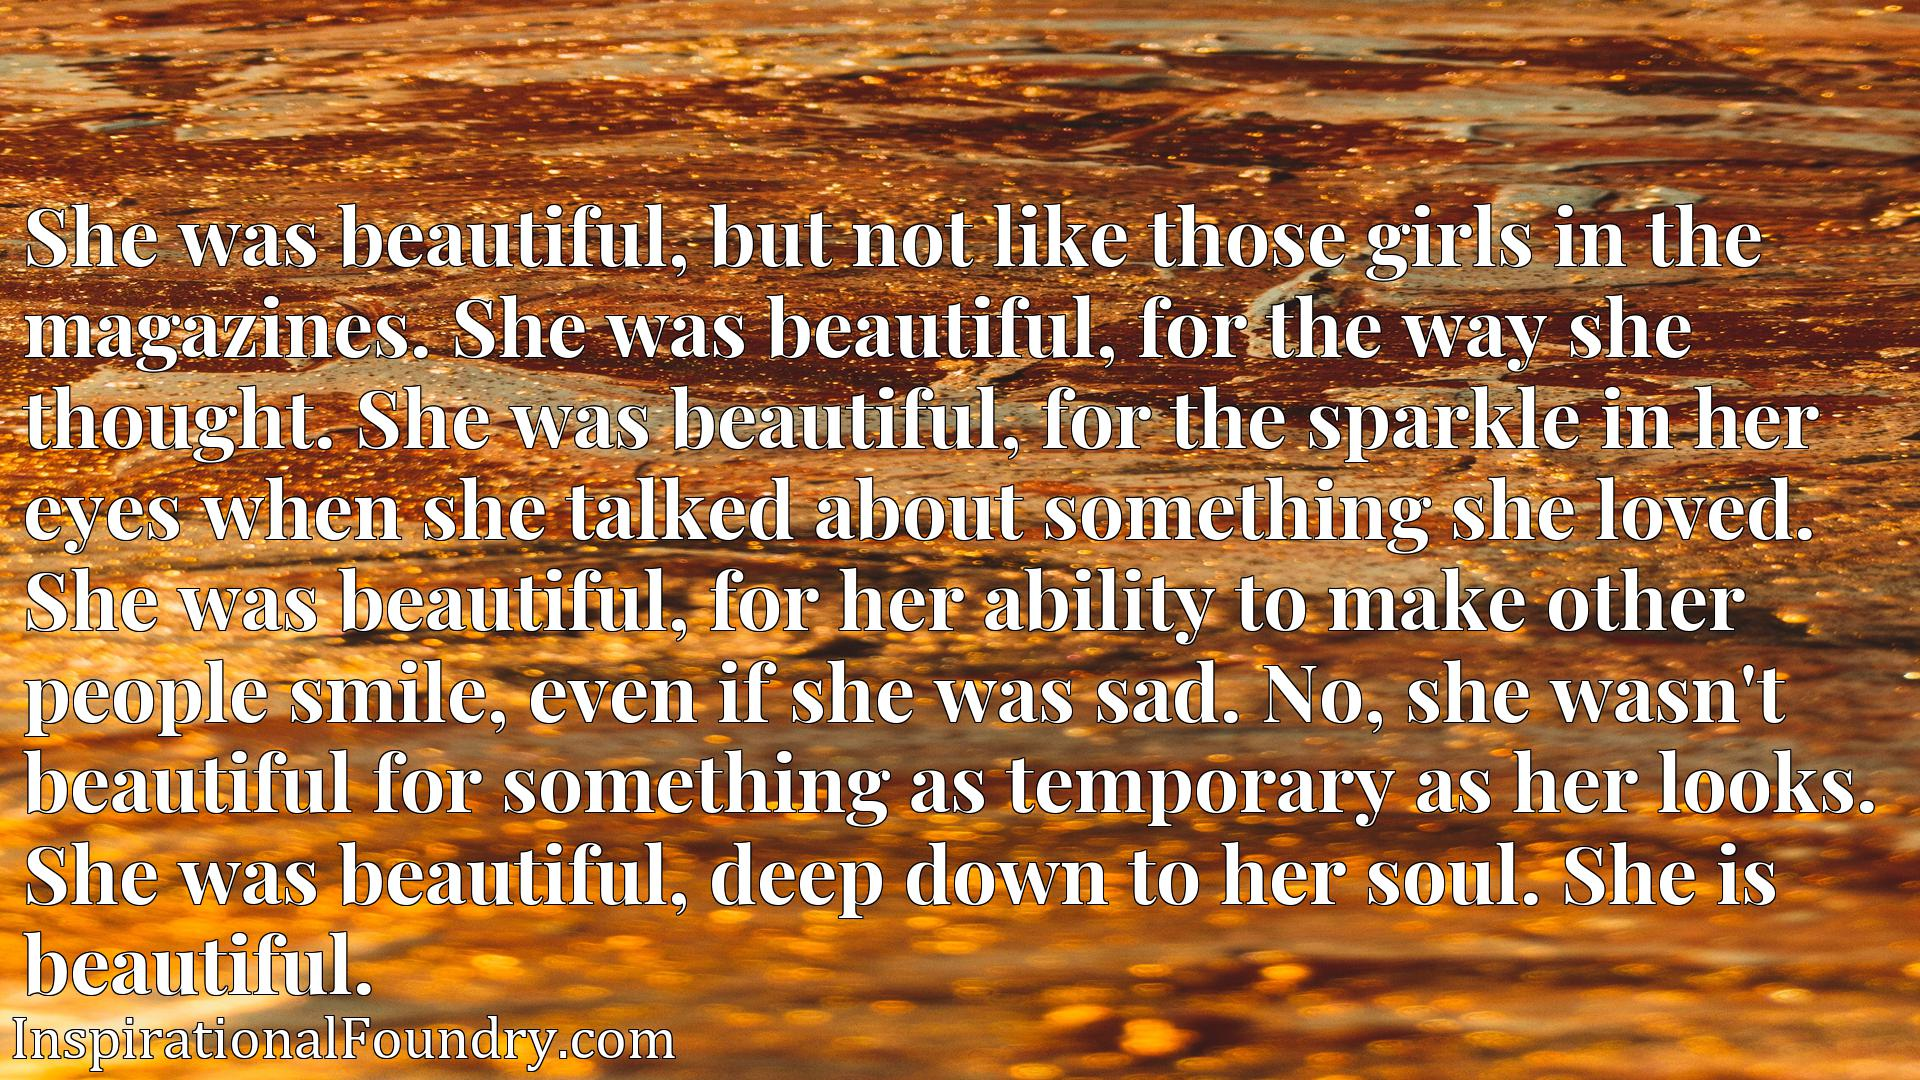 Quote Picture :She was beautiful, but not like those girls in the magazines. She was beautiful, for the way she thought. She was beautiful, for the sparkle in her eyes when she talked about something she loved. She was beautiful, for her ability to make other people smile, even if she was sad. No, she wasn't beautiful for something as temporary as her looks. She was beautiful, deep down to her soul. She is beautiful.